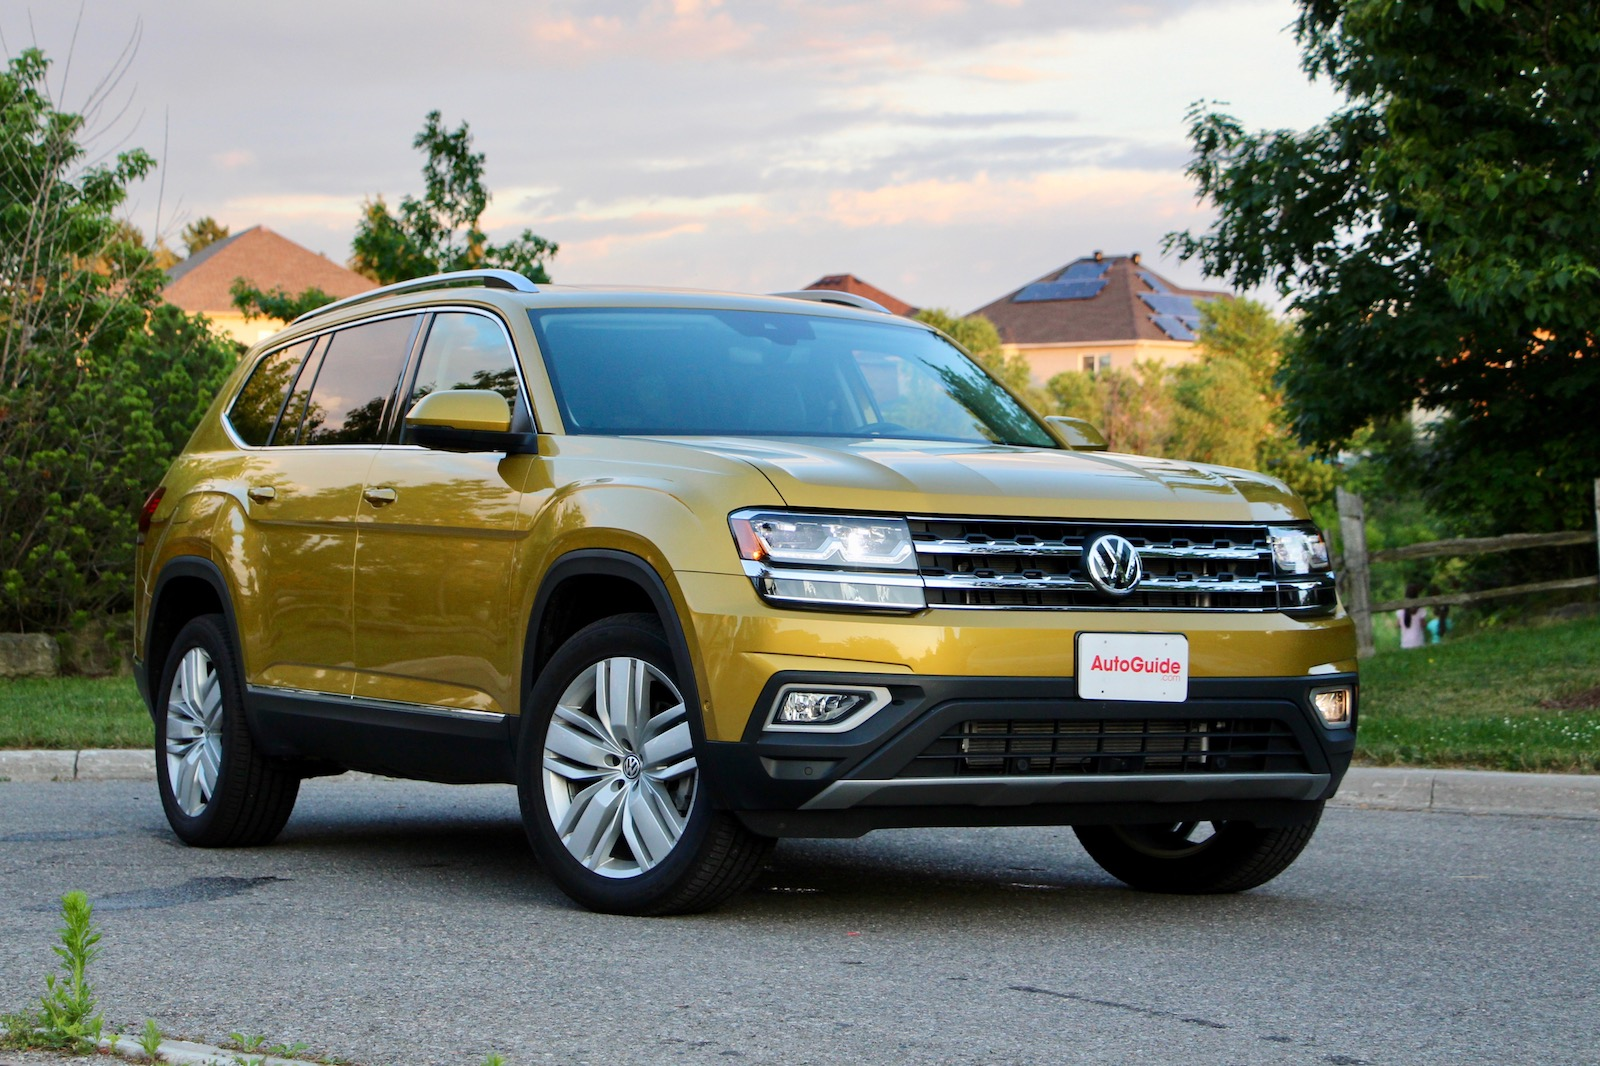 2018 volkswagen atlas vs 2017 honda pilot comparison test. Black Bedroom Furniture Sets. Home Design Ideas